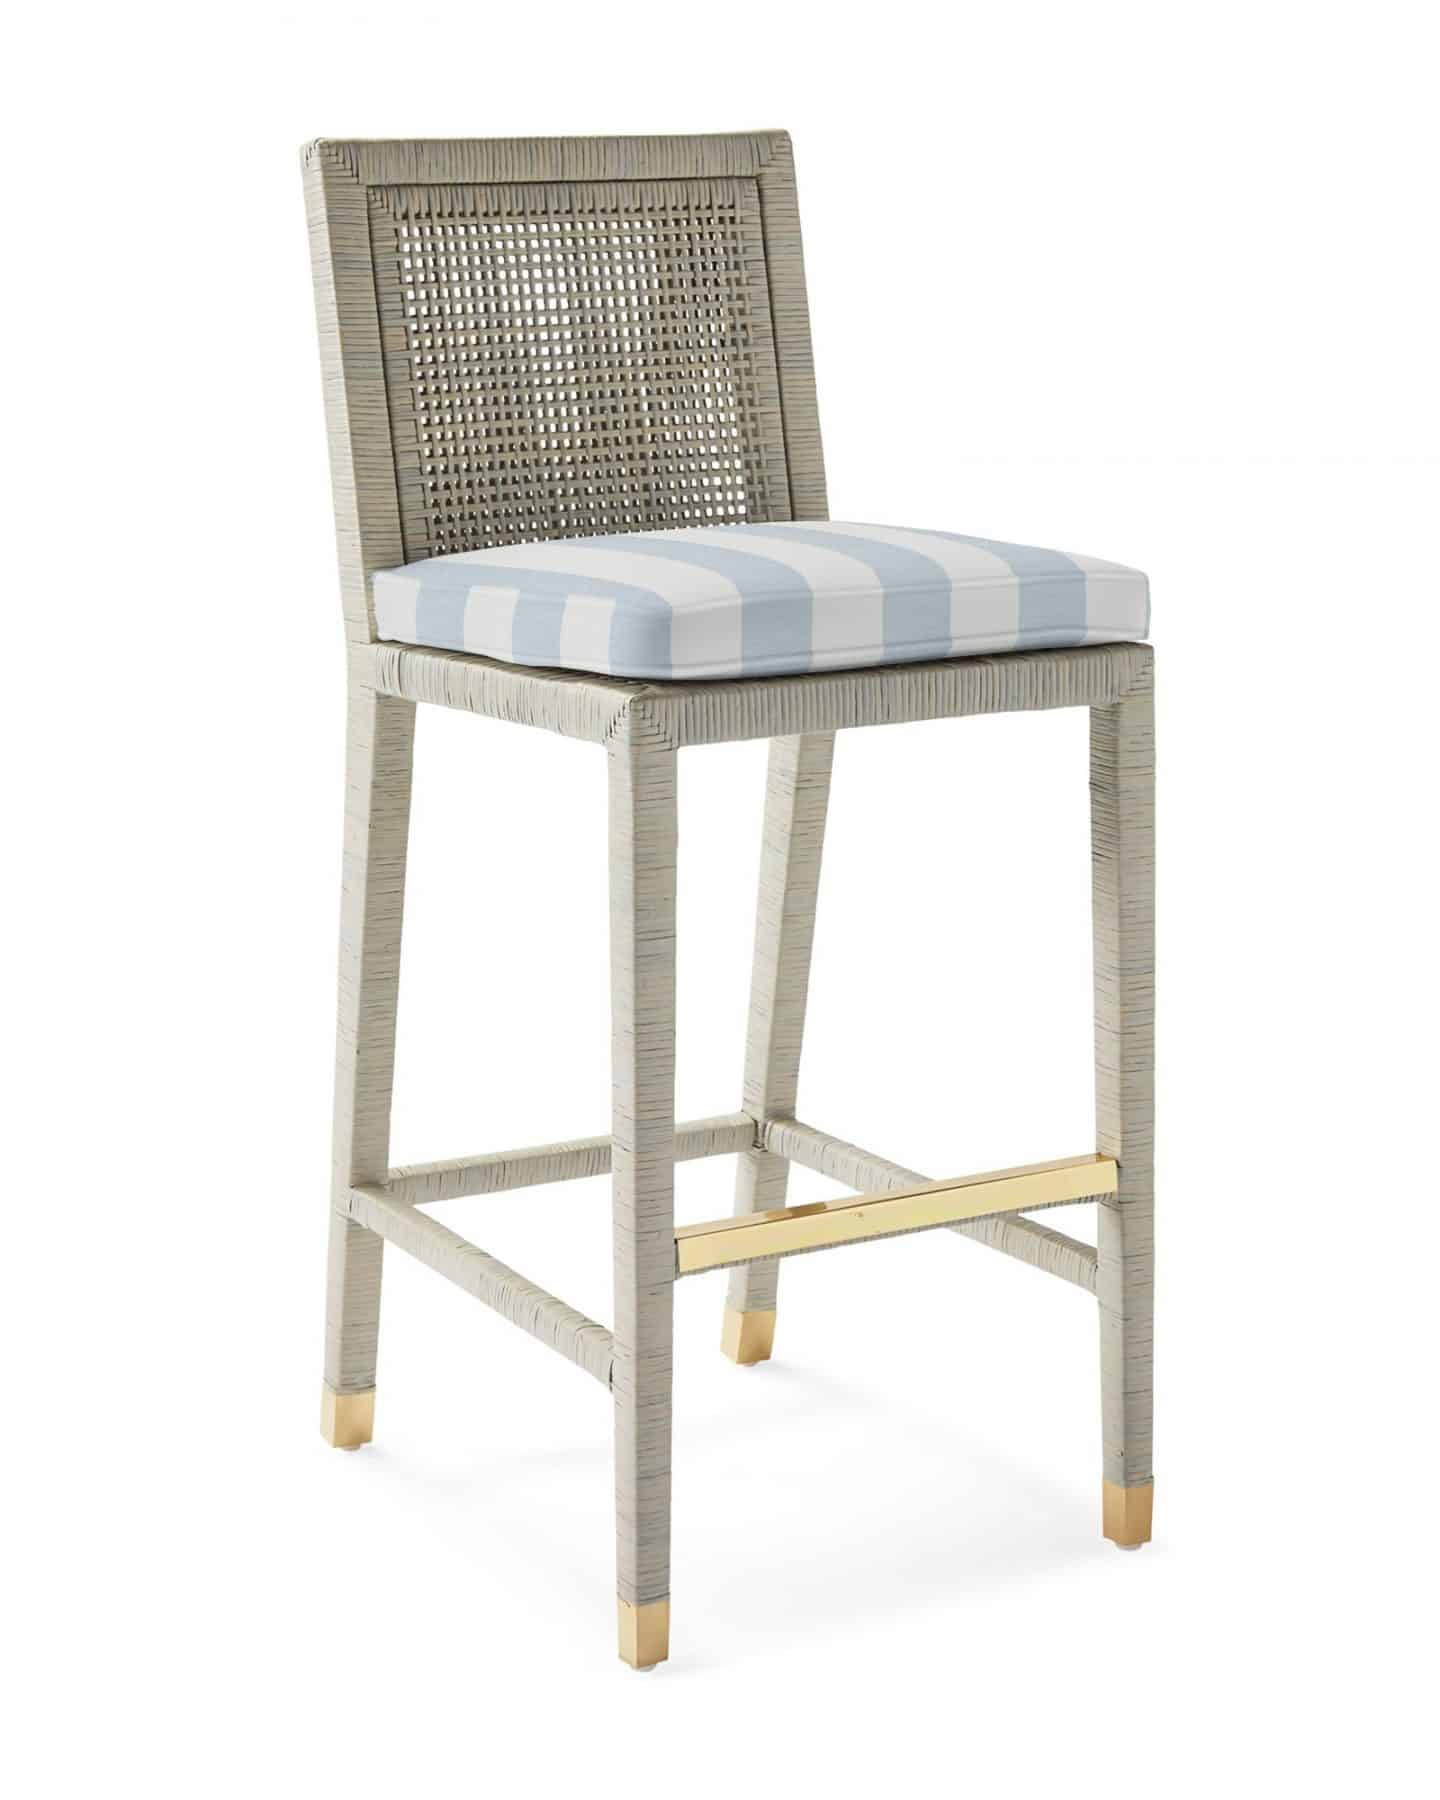 Serena & Lily Coastal Bar Stool